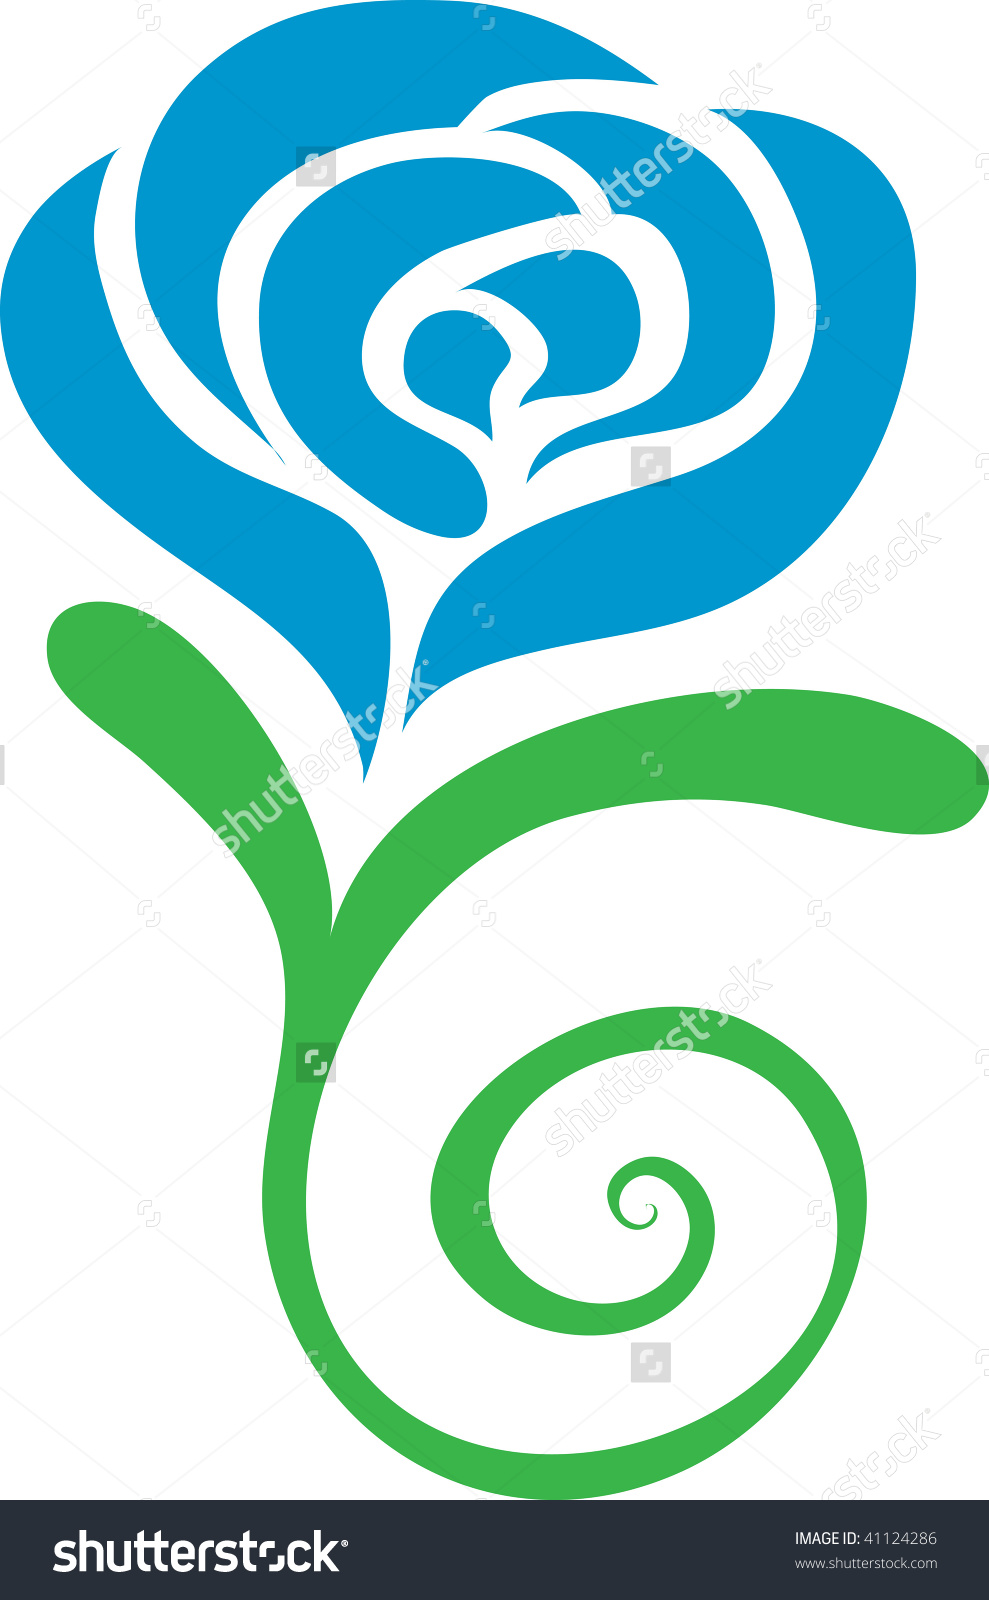 Blue Rose clipart #13, Download drawings